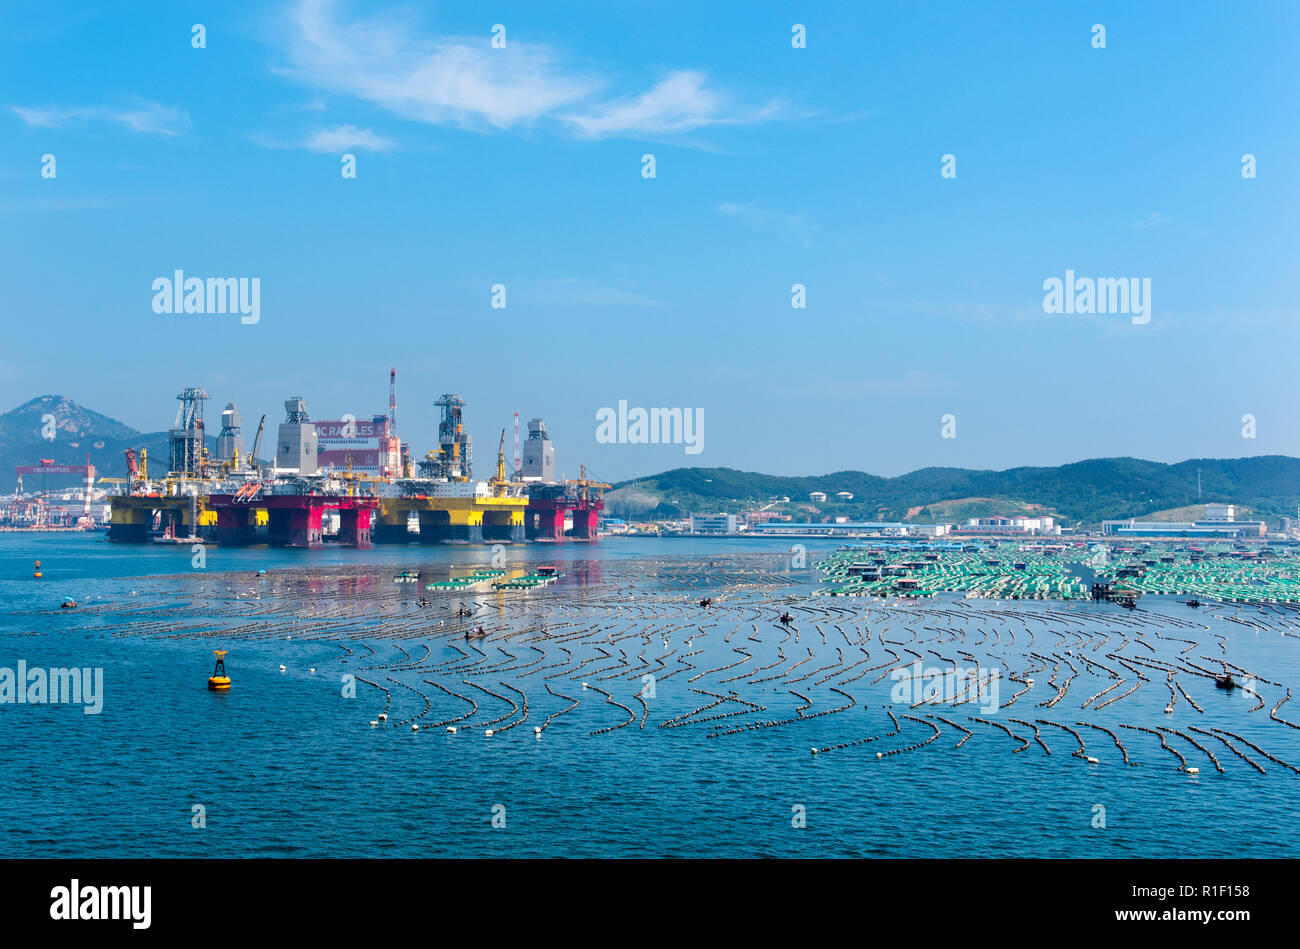 YANTAI, SHANDONG, CHINA - 21JUL2018: Semisubmersible rigs, owned by CIMC and subsidiaries compete for space with traditional fish farming. - Stock Image